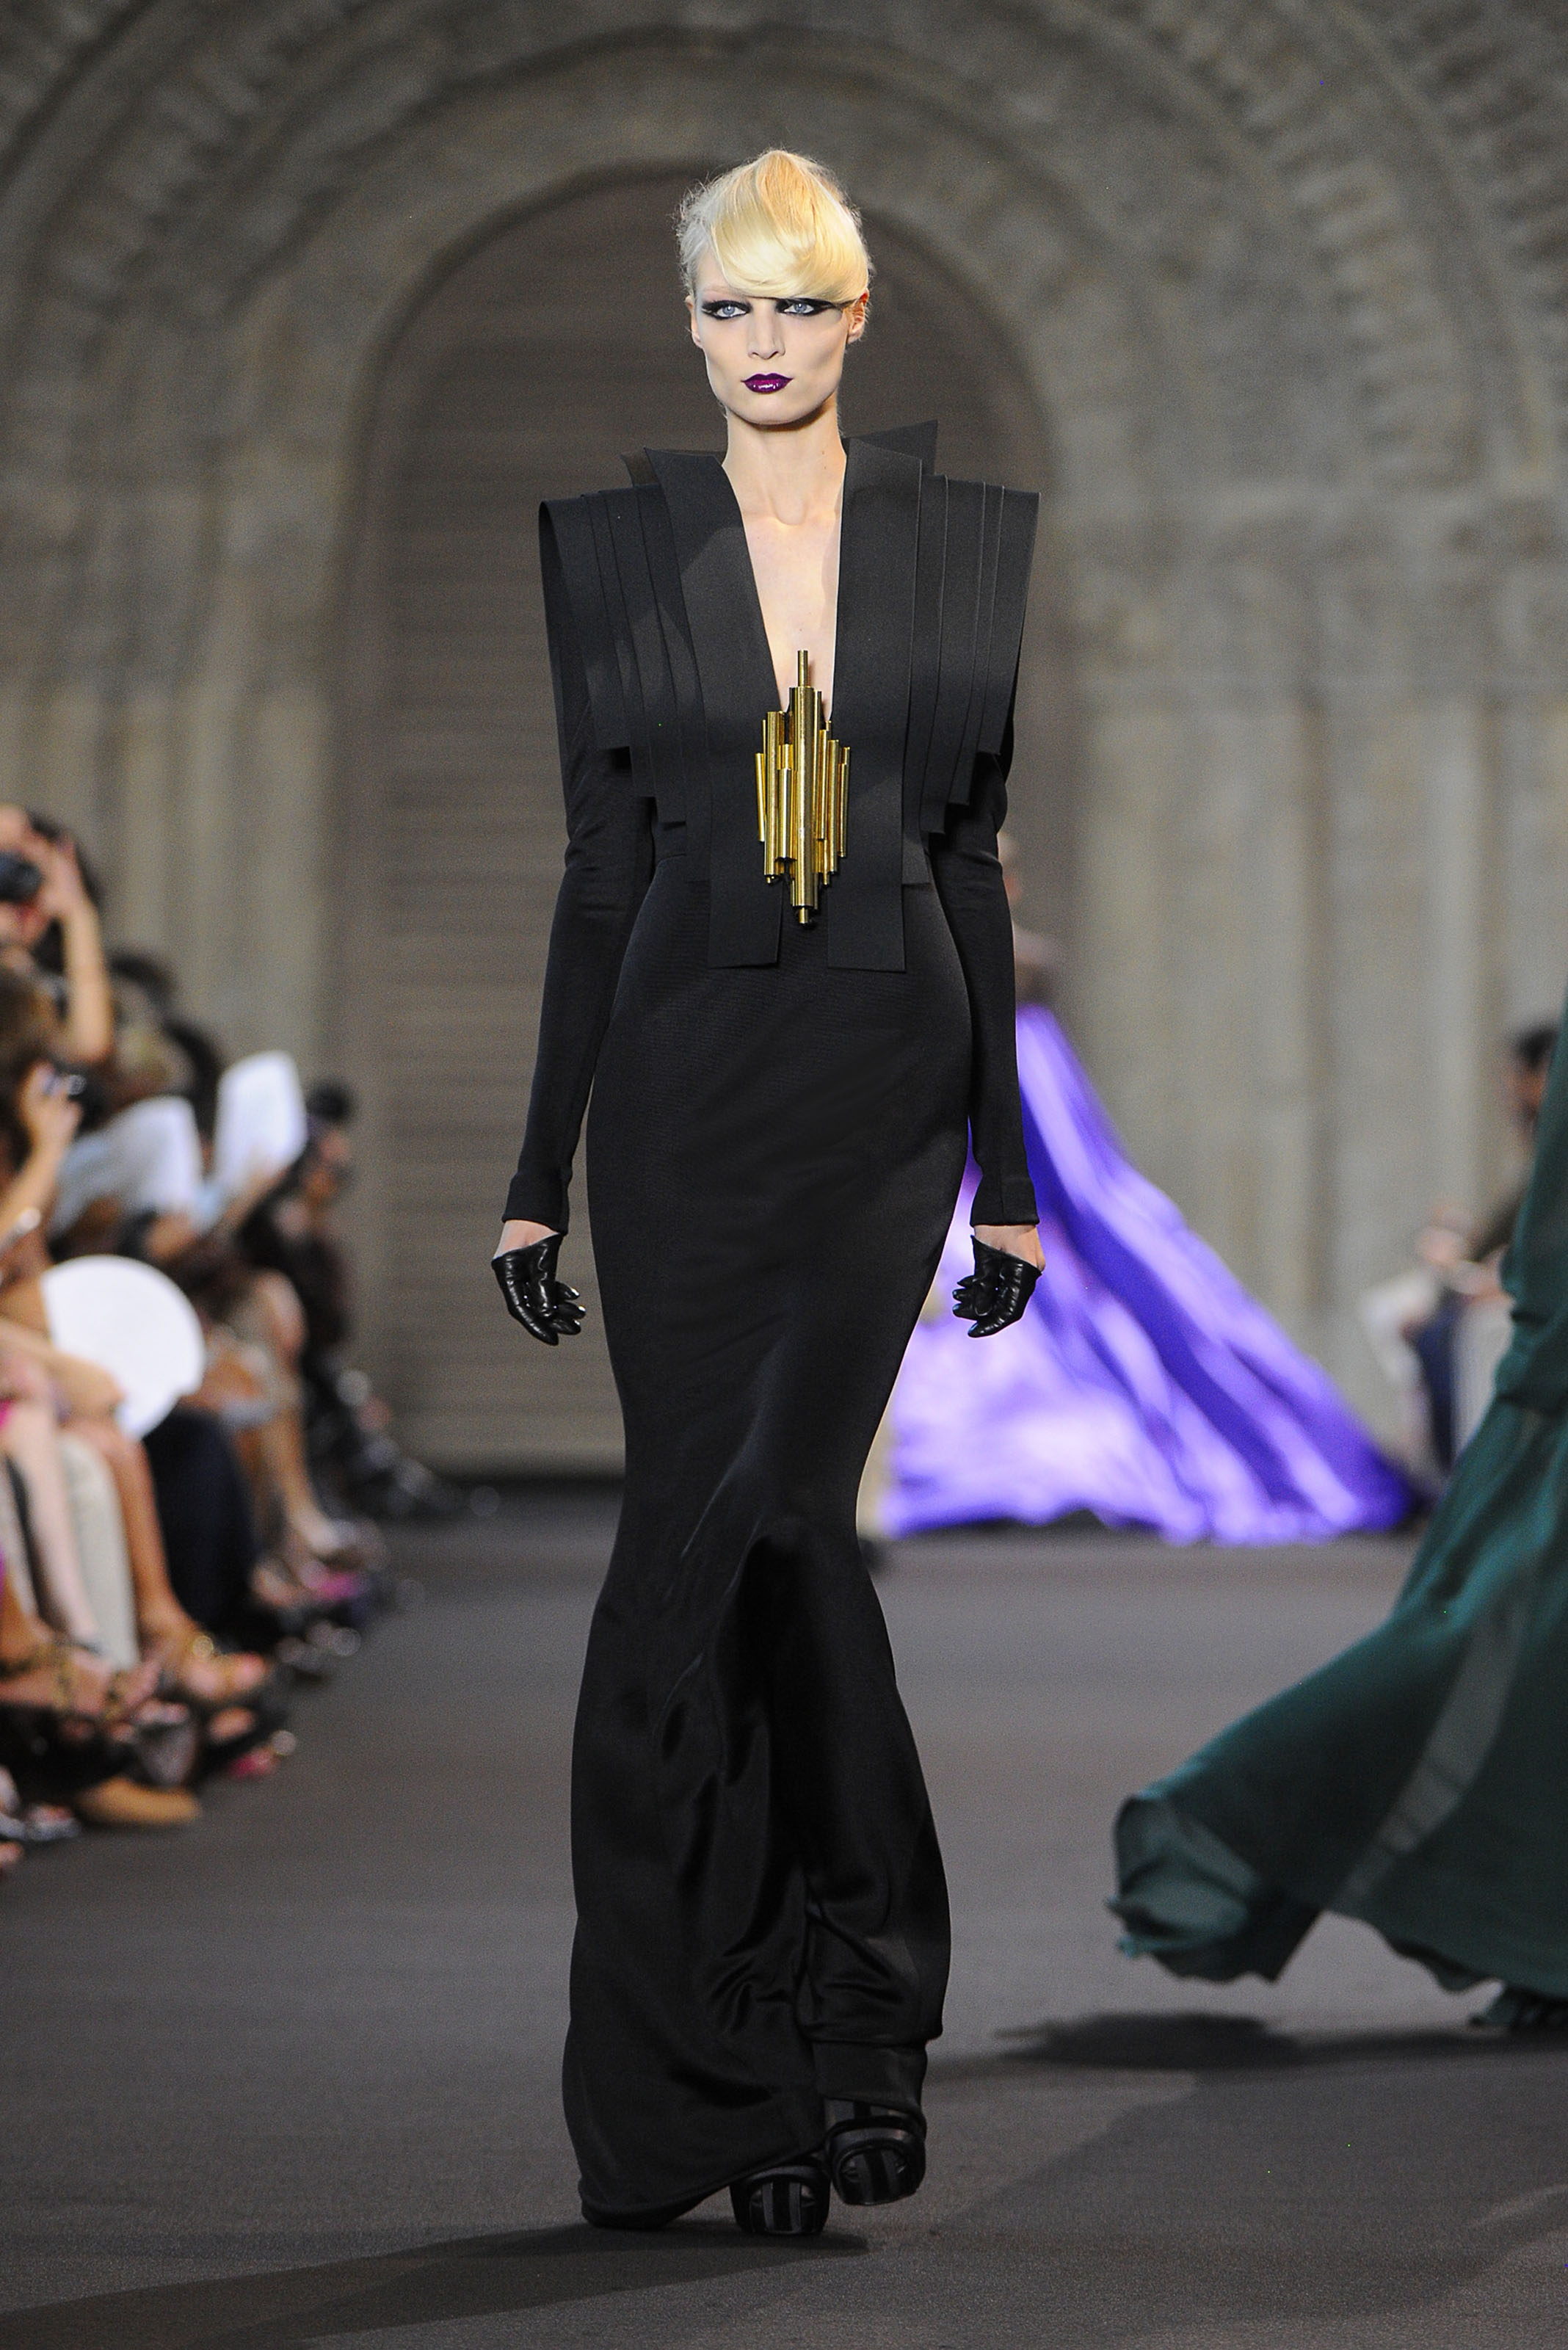 Today's Inspiration: Stéphane Rolland Haute Couture stéphane rolland Today's Inspiration: Stéphane Rolland Haute Couture Todays Inspiration St  phane Rolland Haute Couture 3